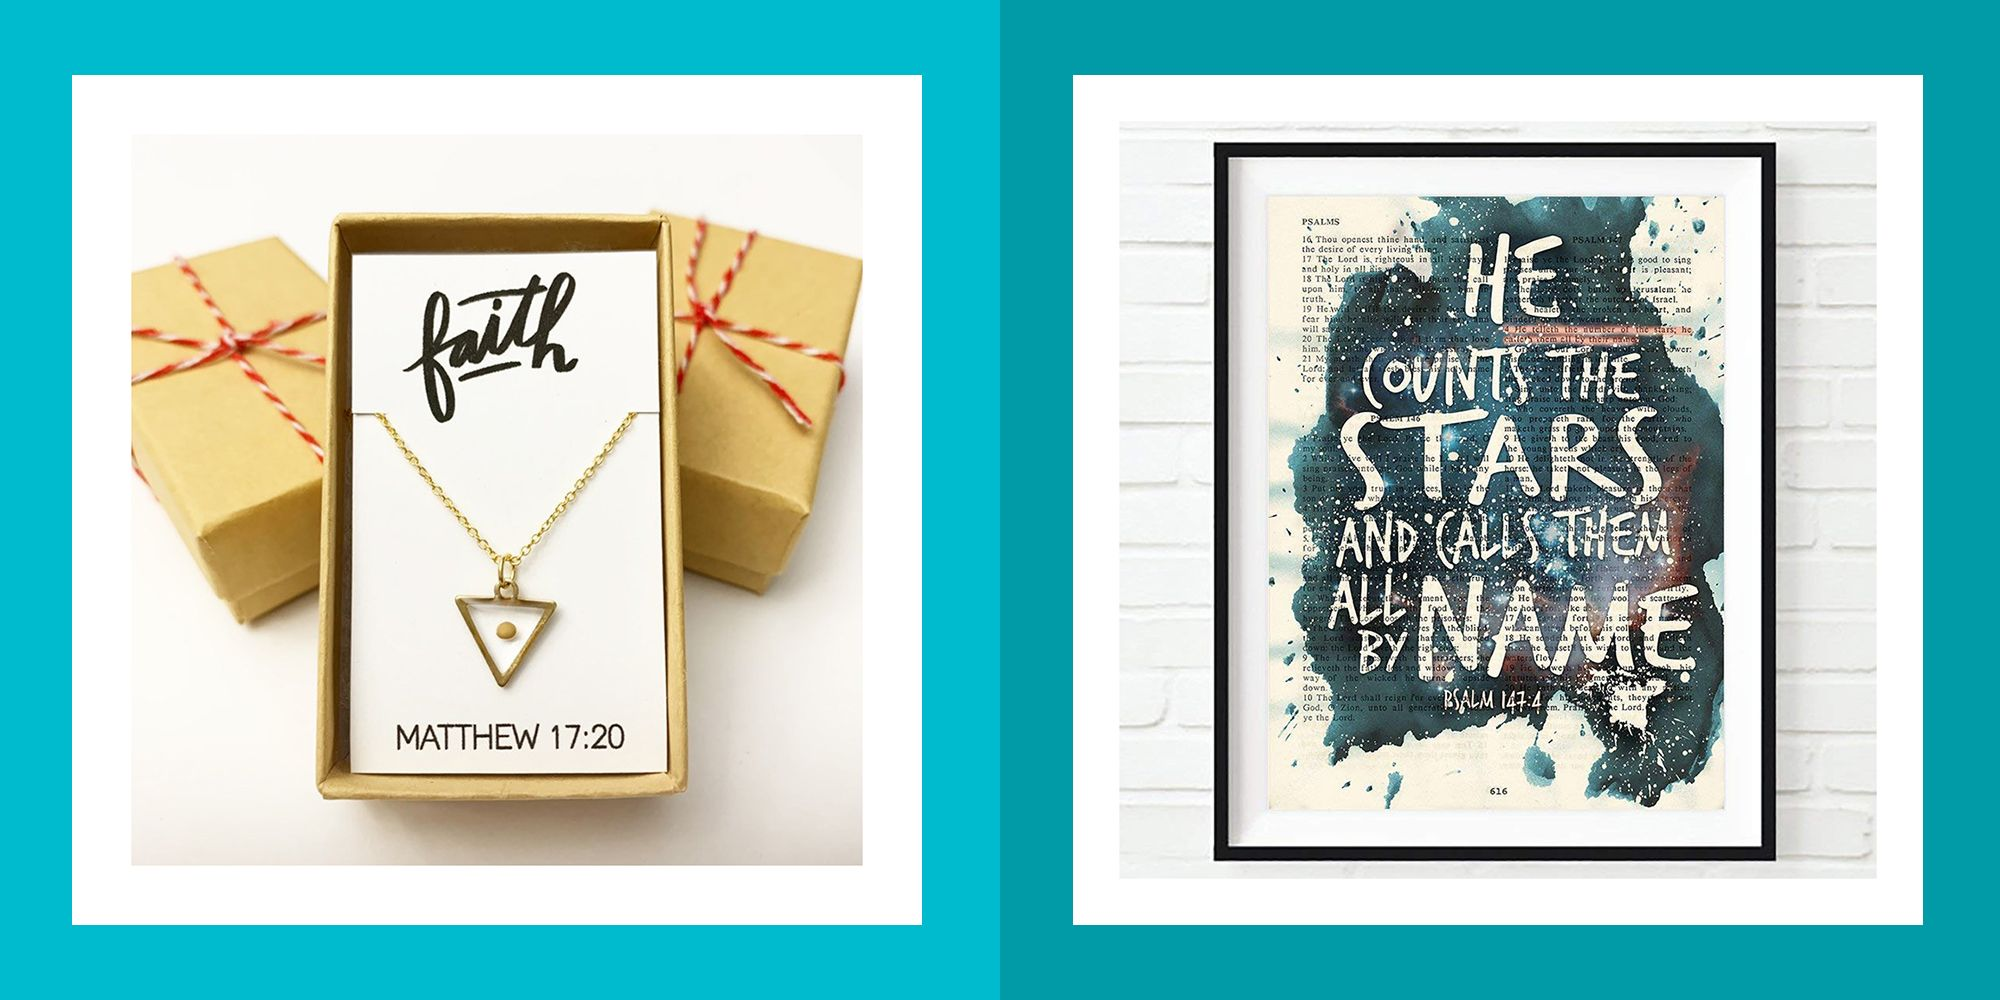 36 Christian Gifts That Say 'I Love You'